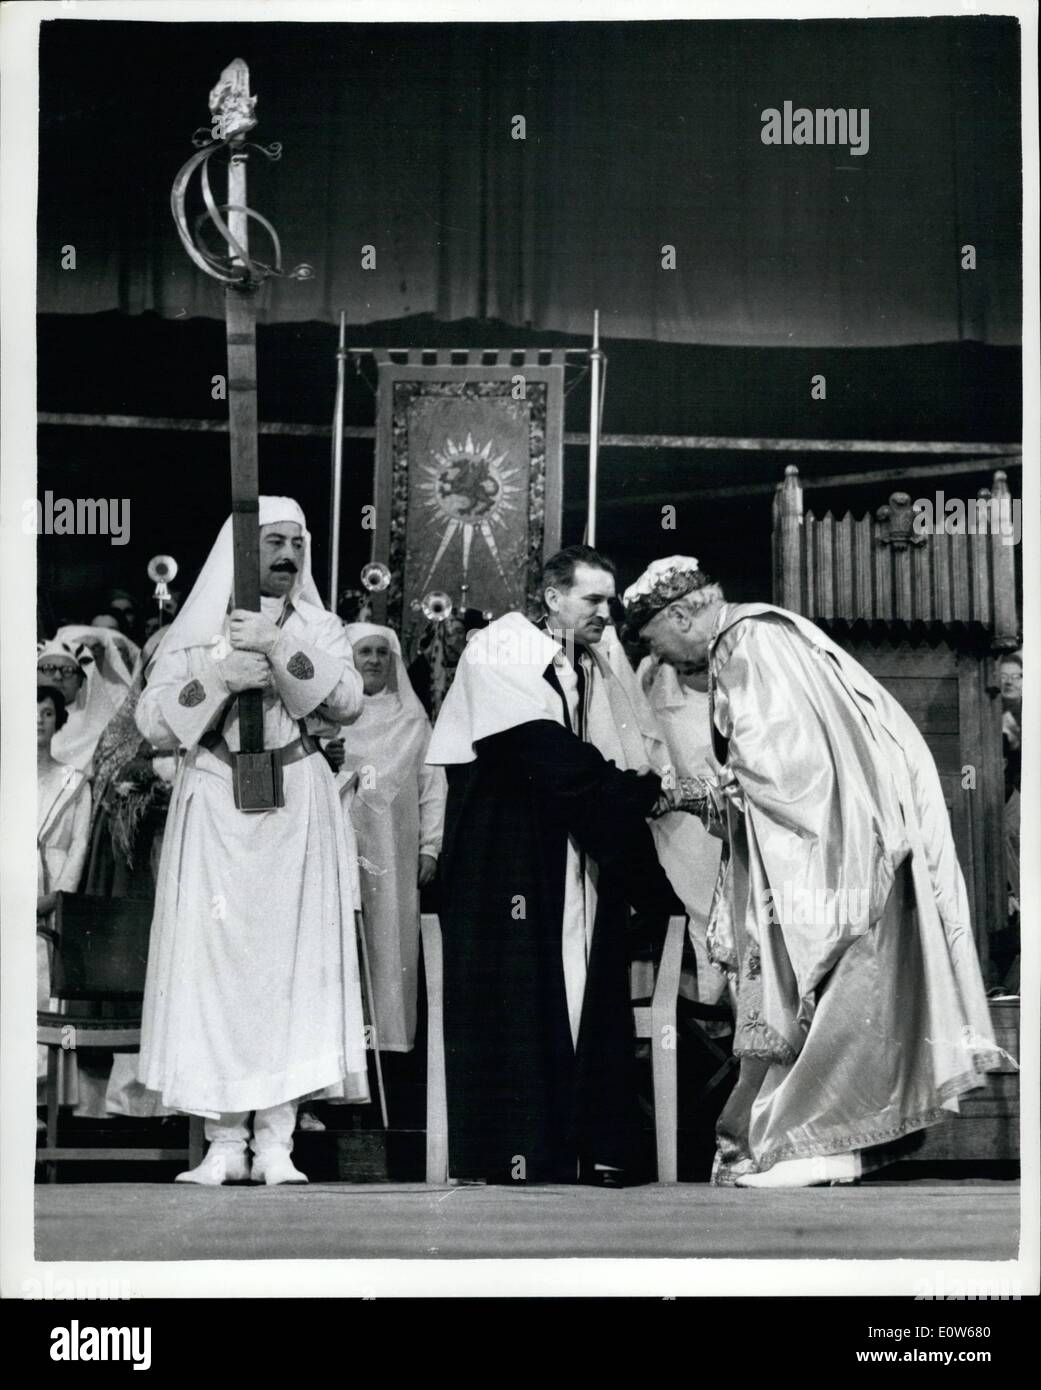 Aug. 08, 1961 - The National eisteddfod at rhos - near wreeham. the new Bard is Chaired. The Rev. Emrys Edwards was chaired for - Stock Image